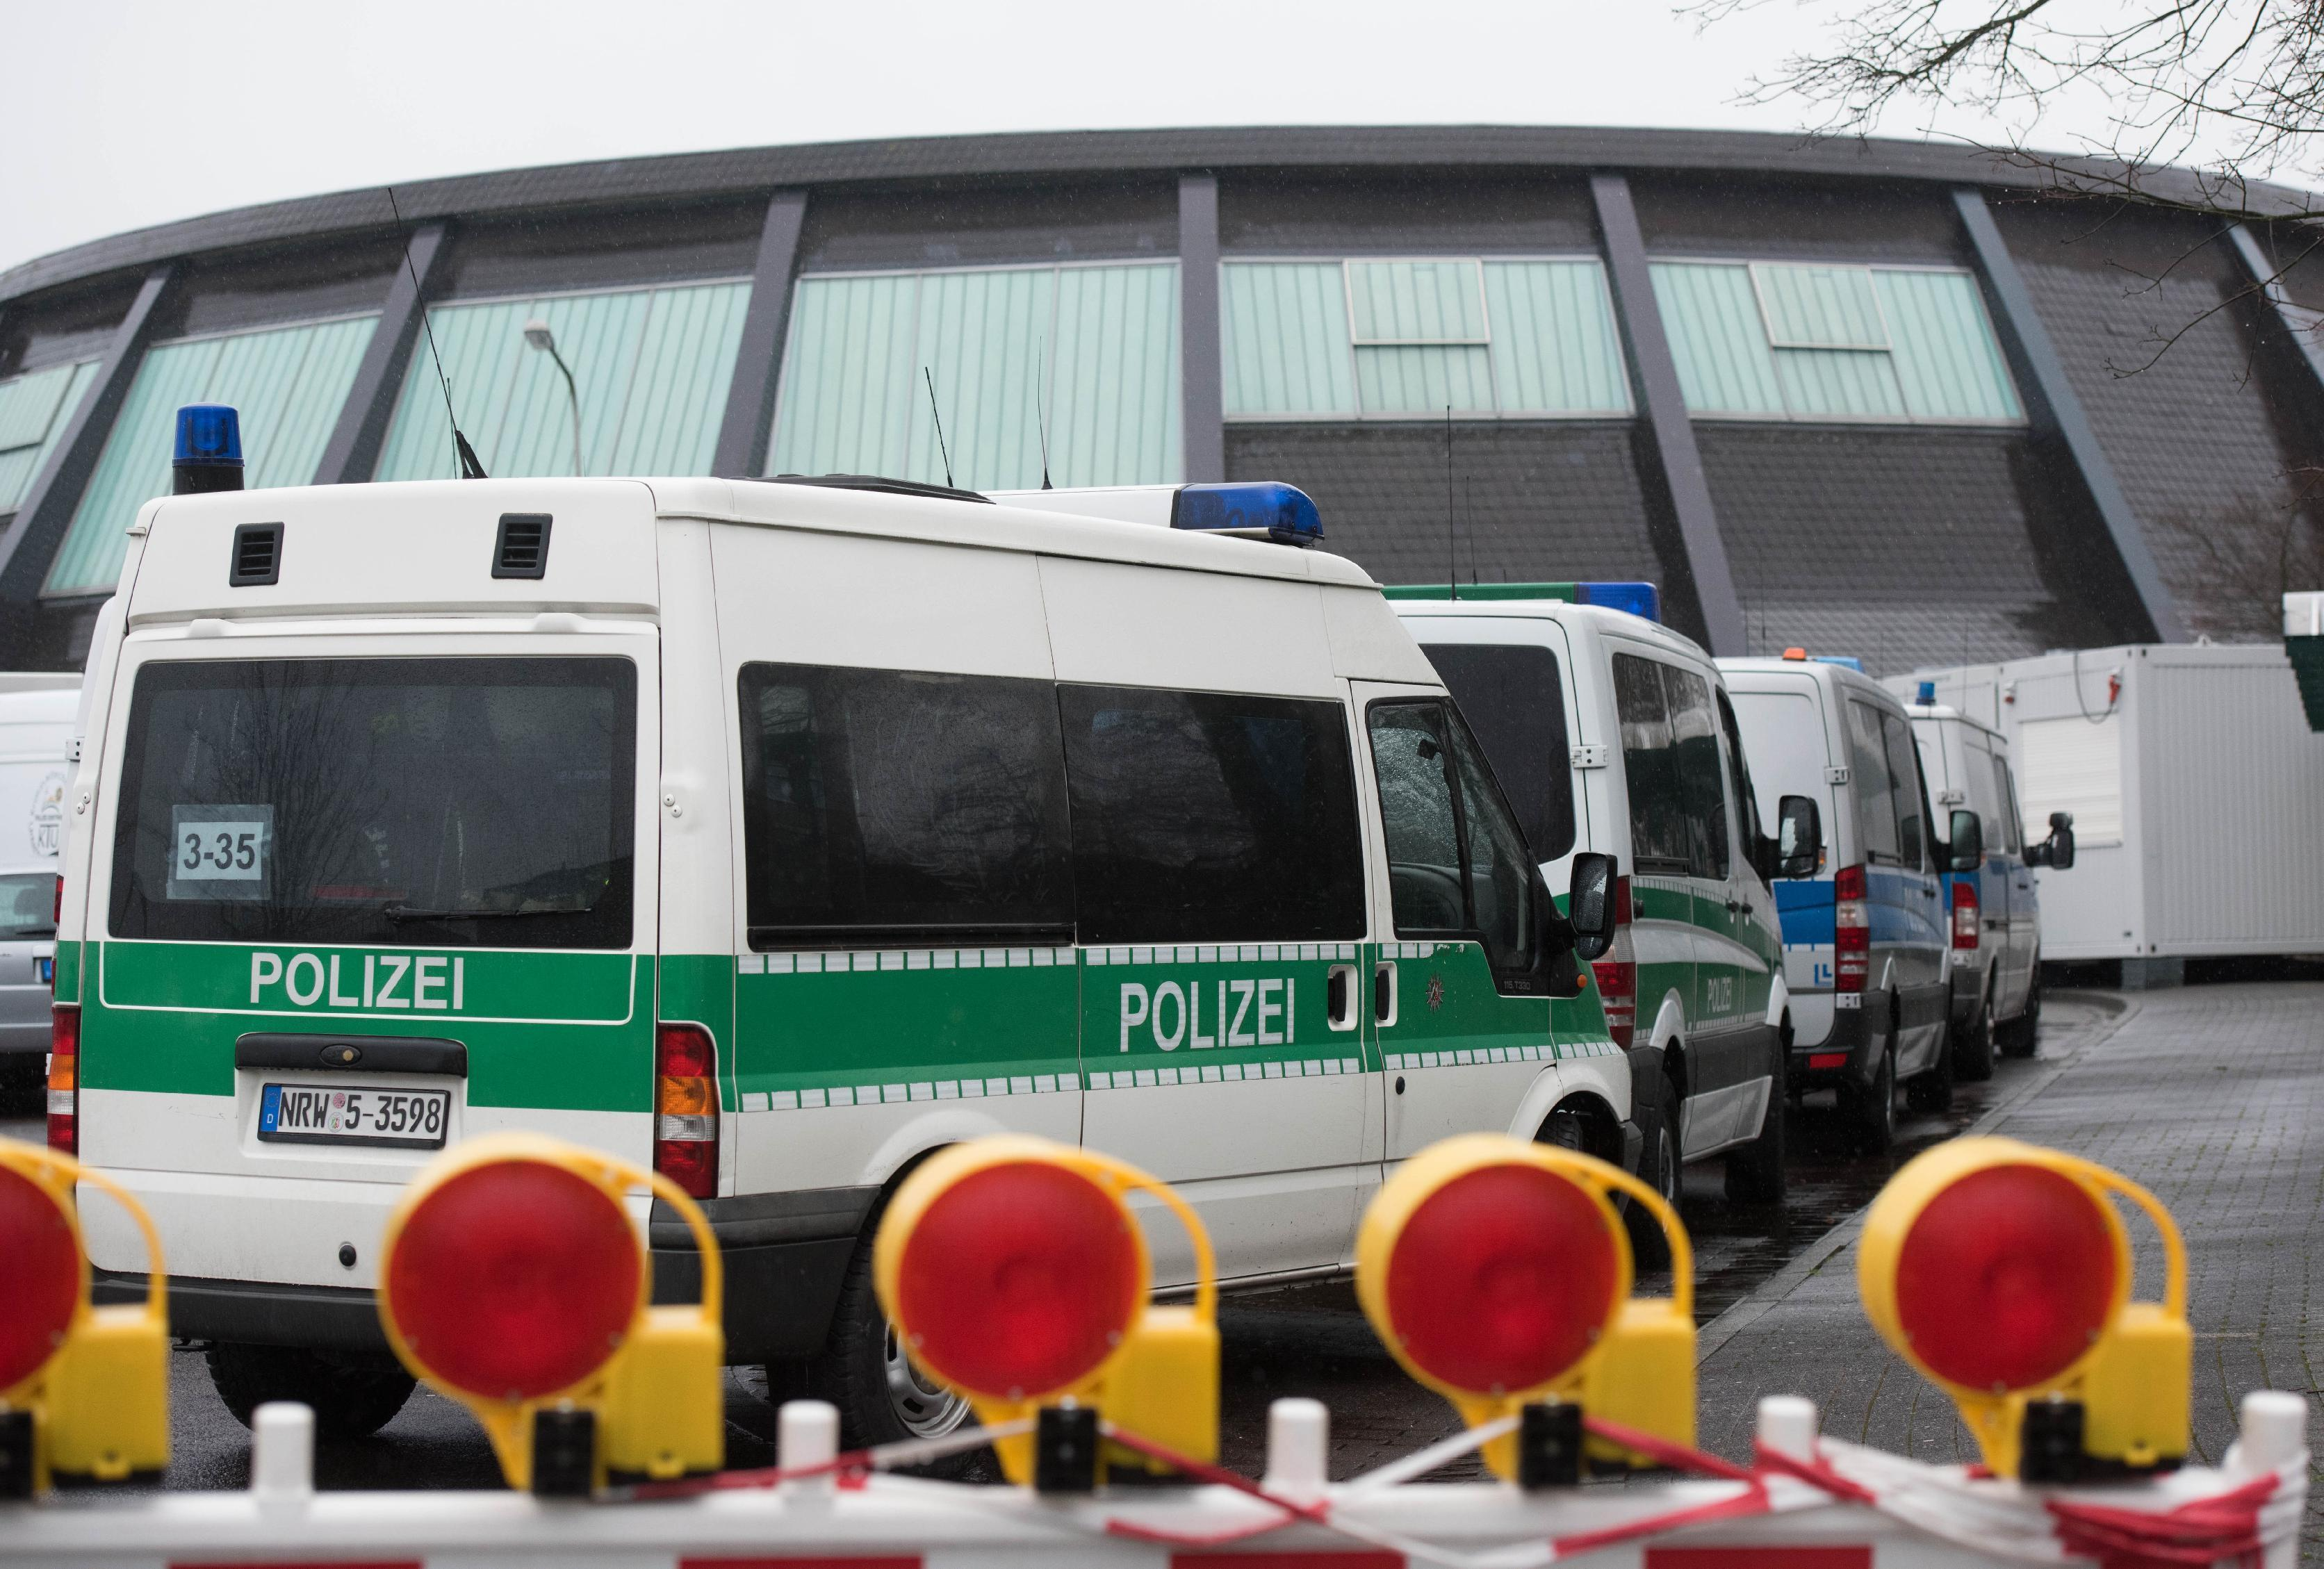 Germany: Suspect in attack plot registered as Syrian refugee